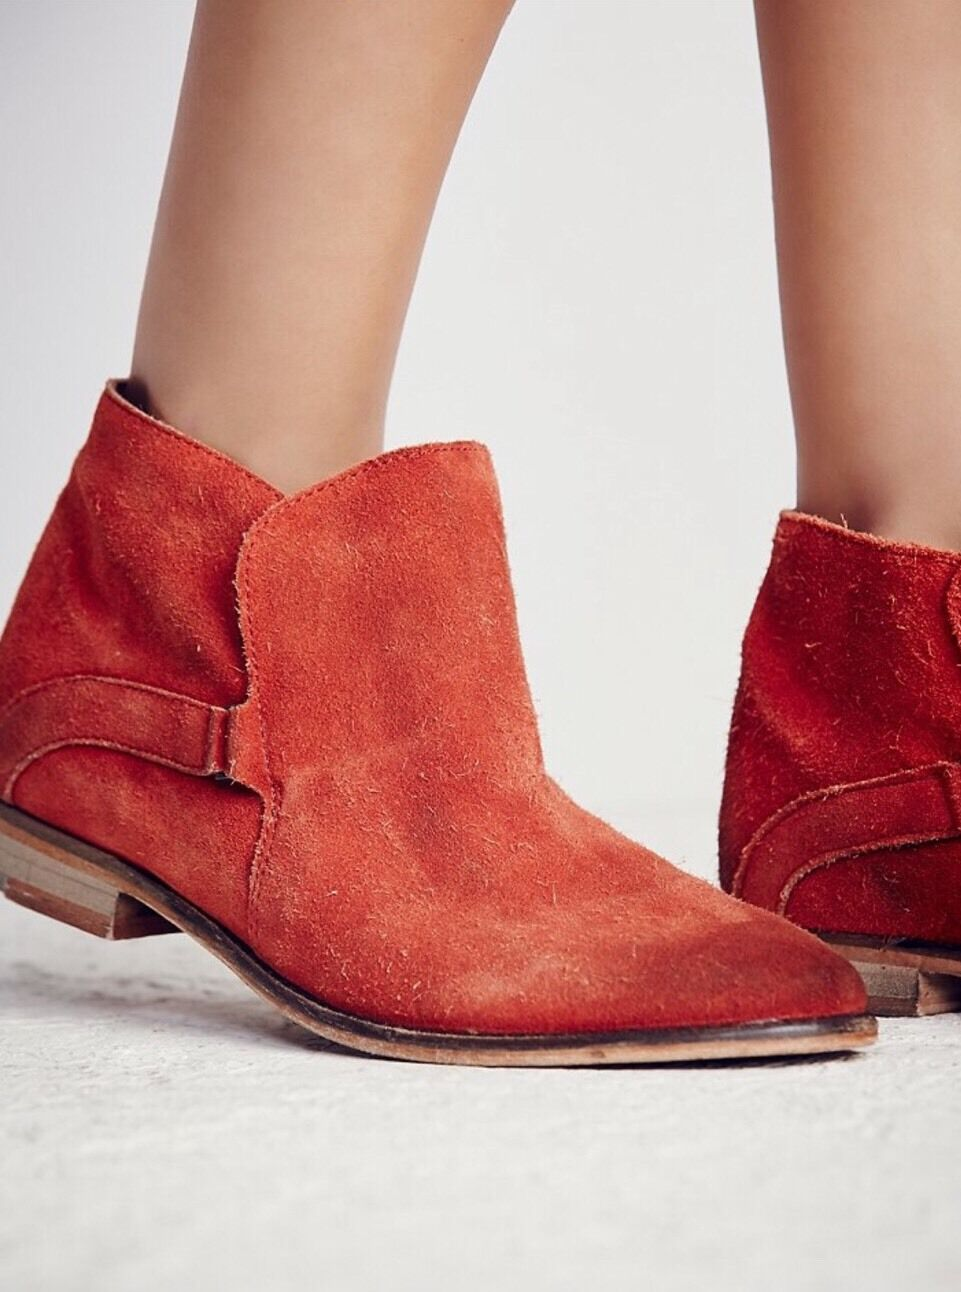 NEW Free People Summit Ankle Stiefel in in in rot Suede Größe 40 f850d8